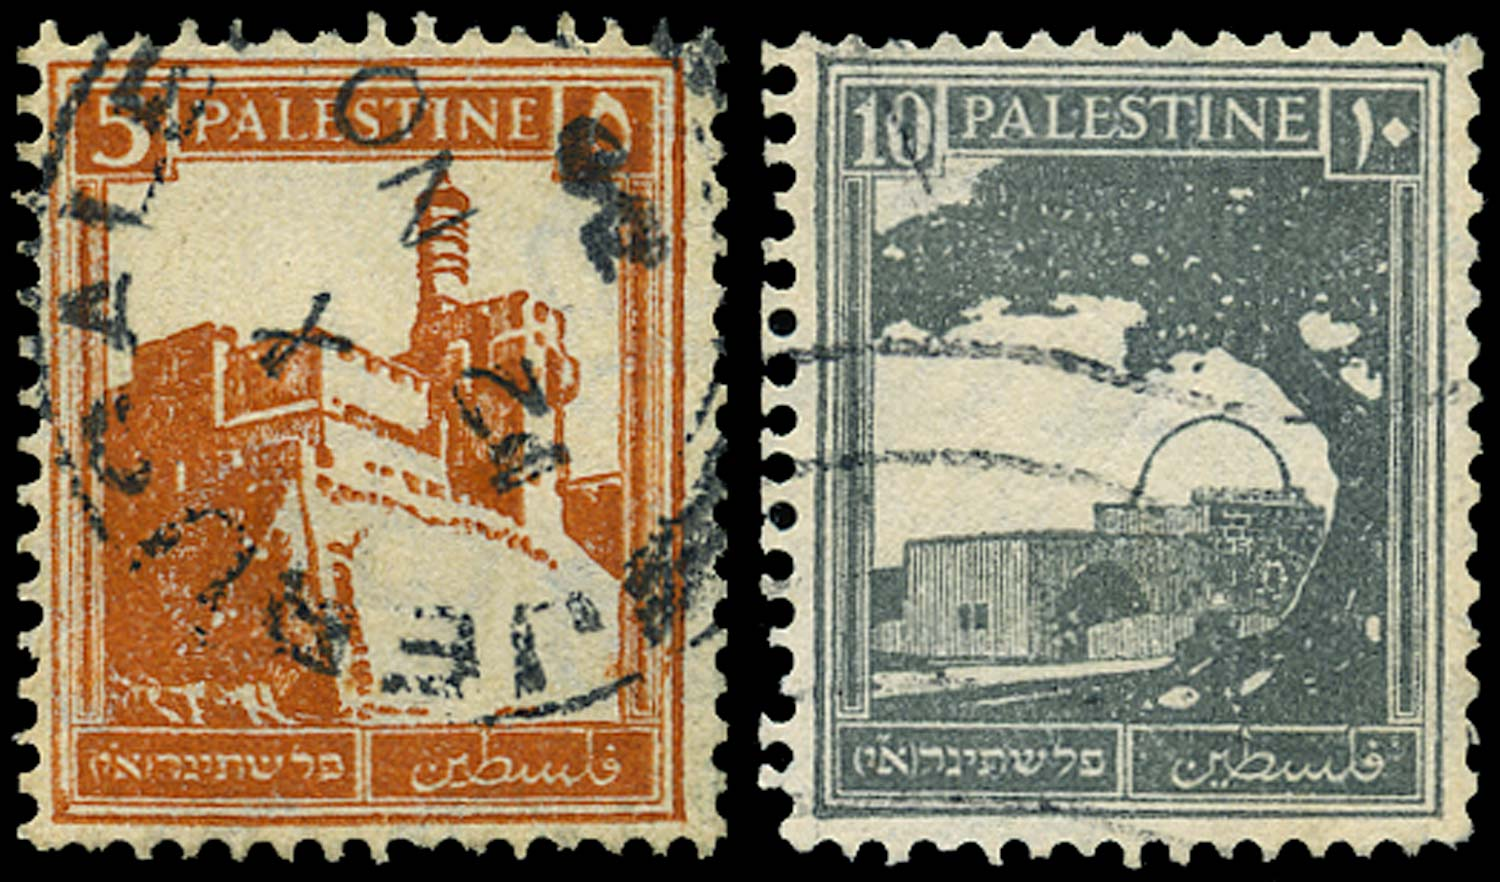 PALESTINE 1927  SG93a, 97a Used